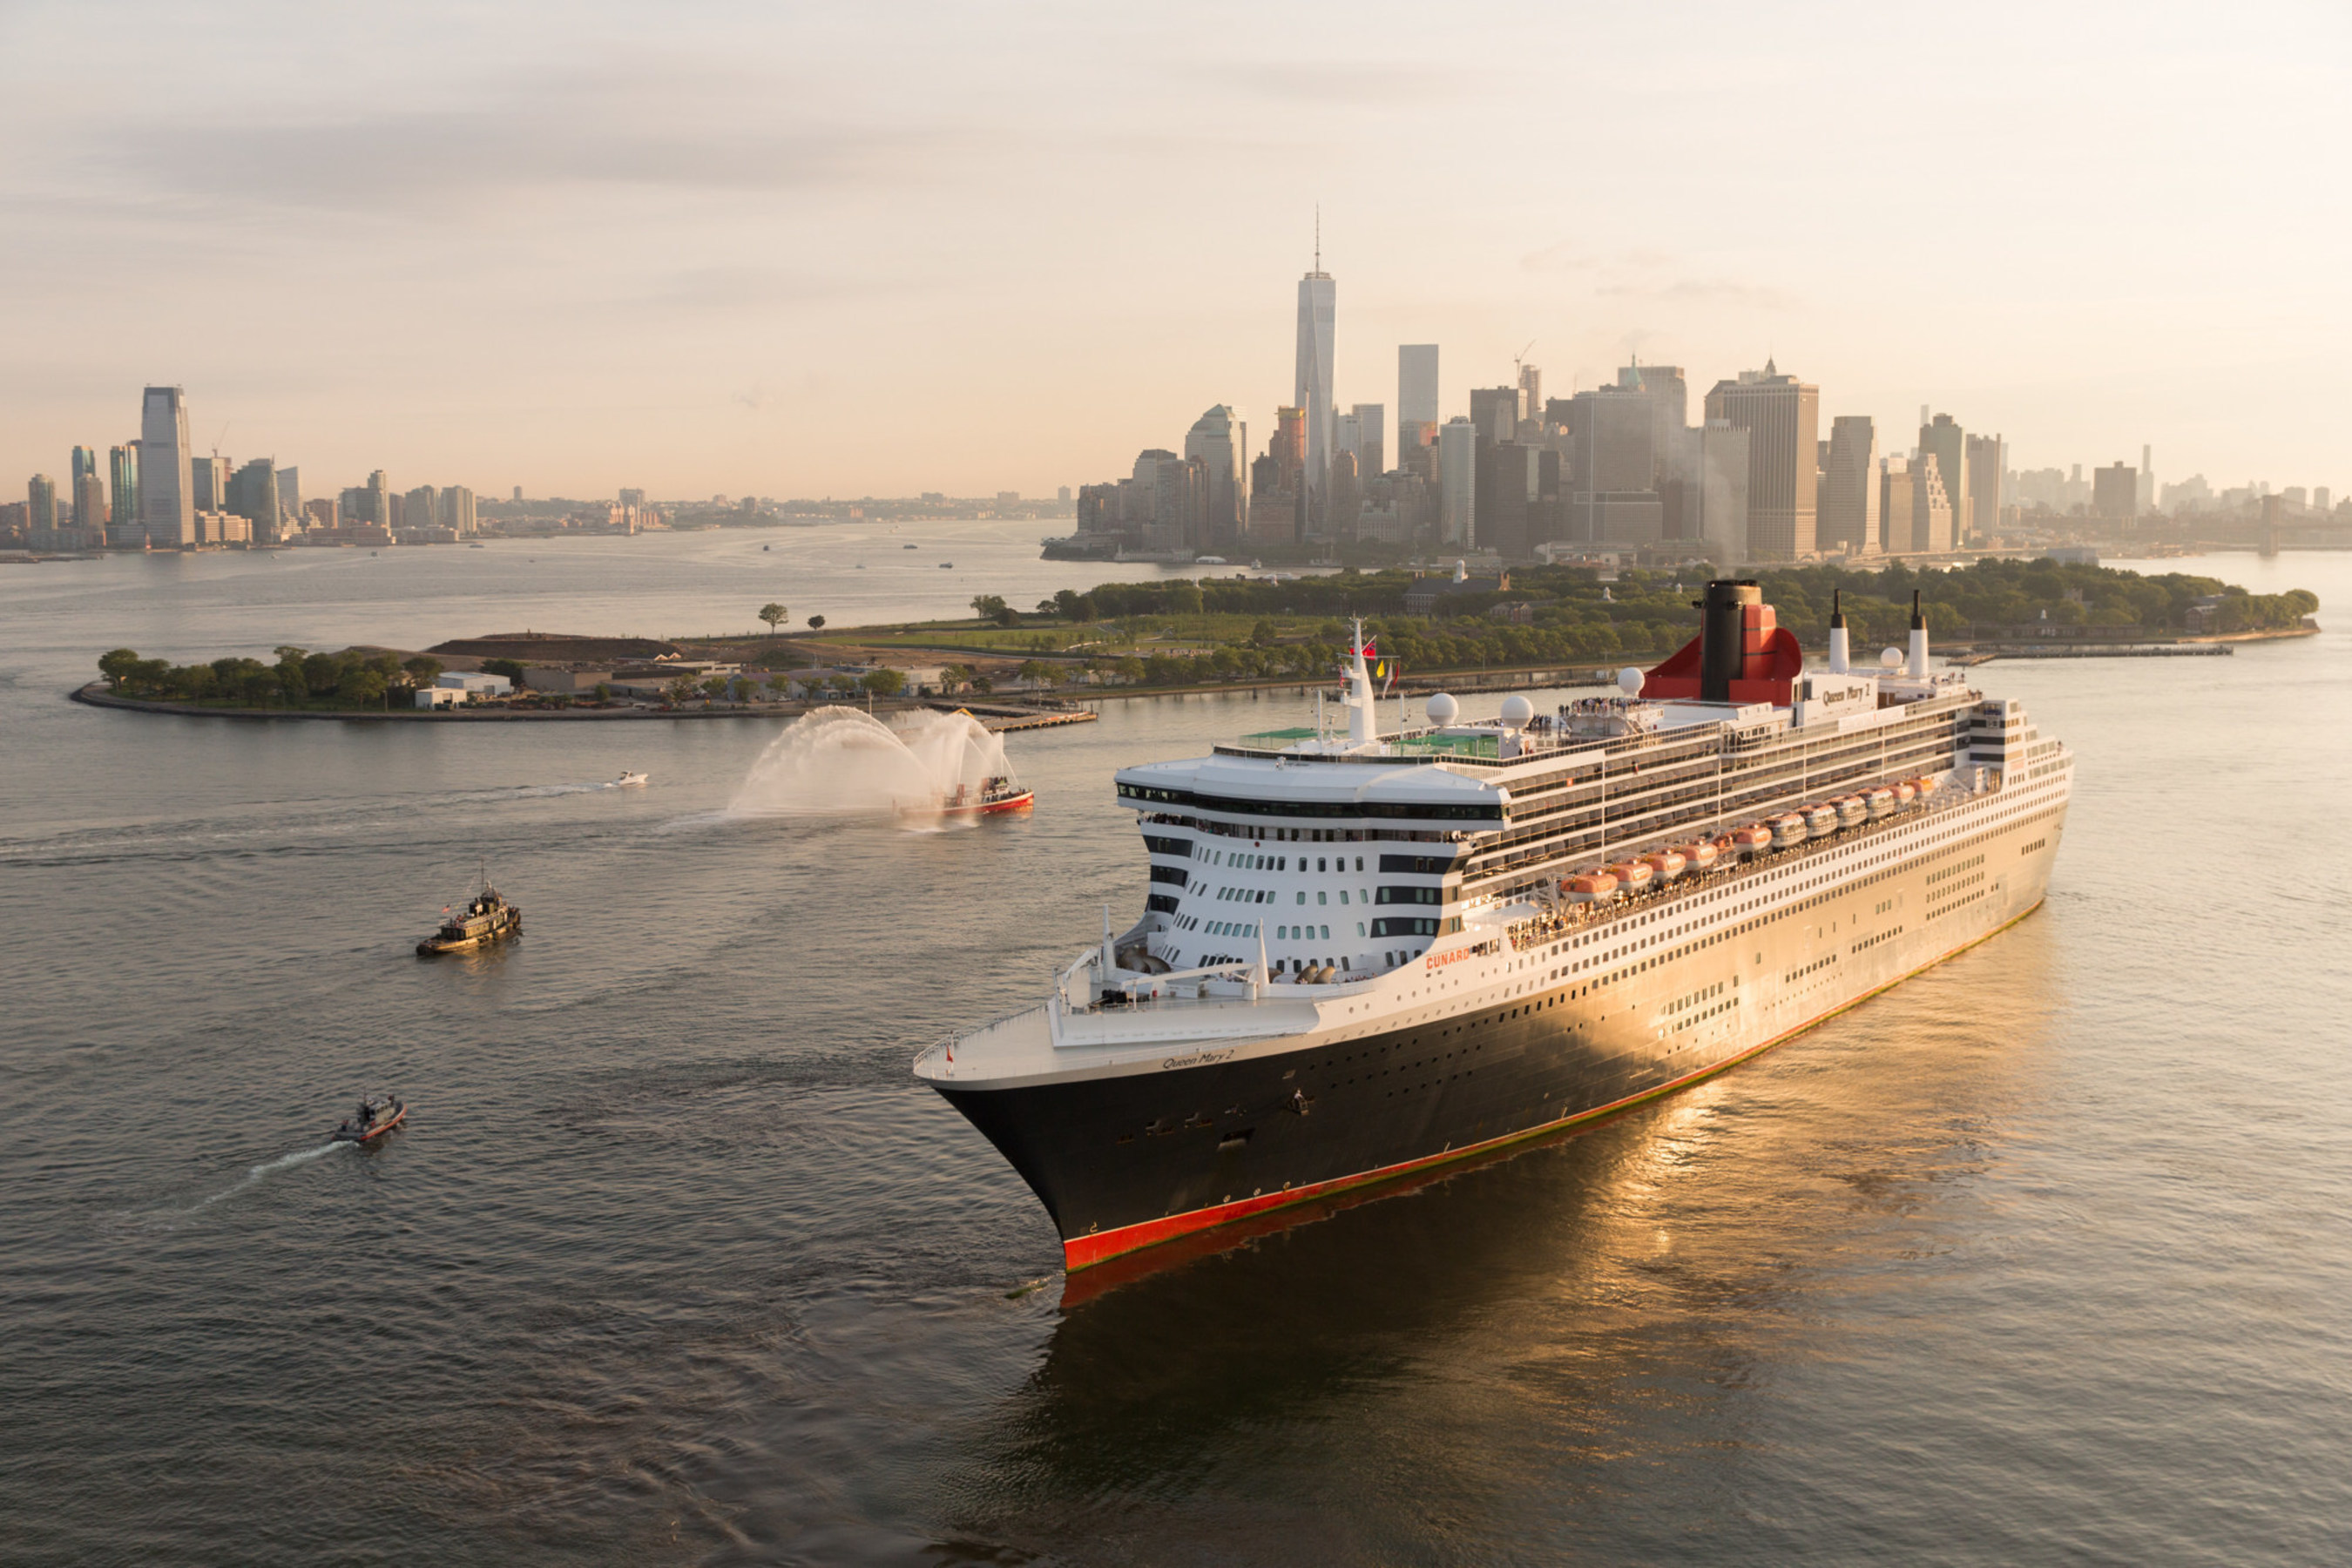 Queen Mary 2 in New York harbor. Photograph by Jonathan Atkin Photography (c)